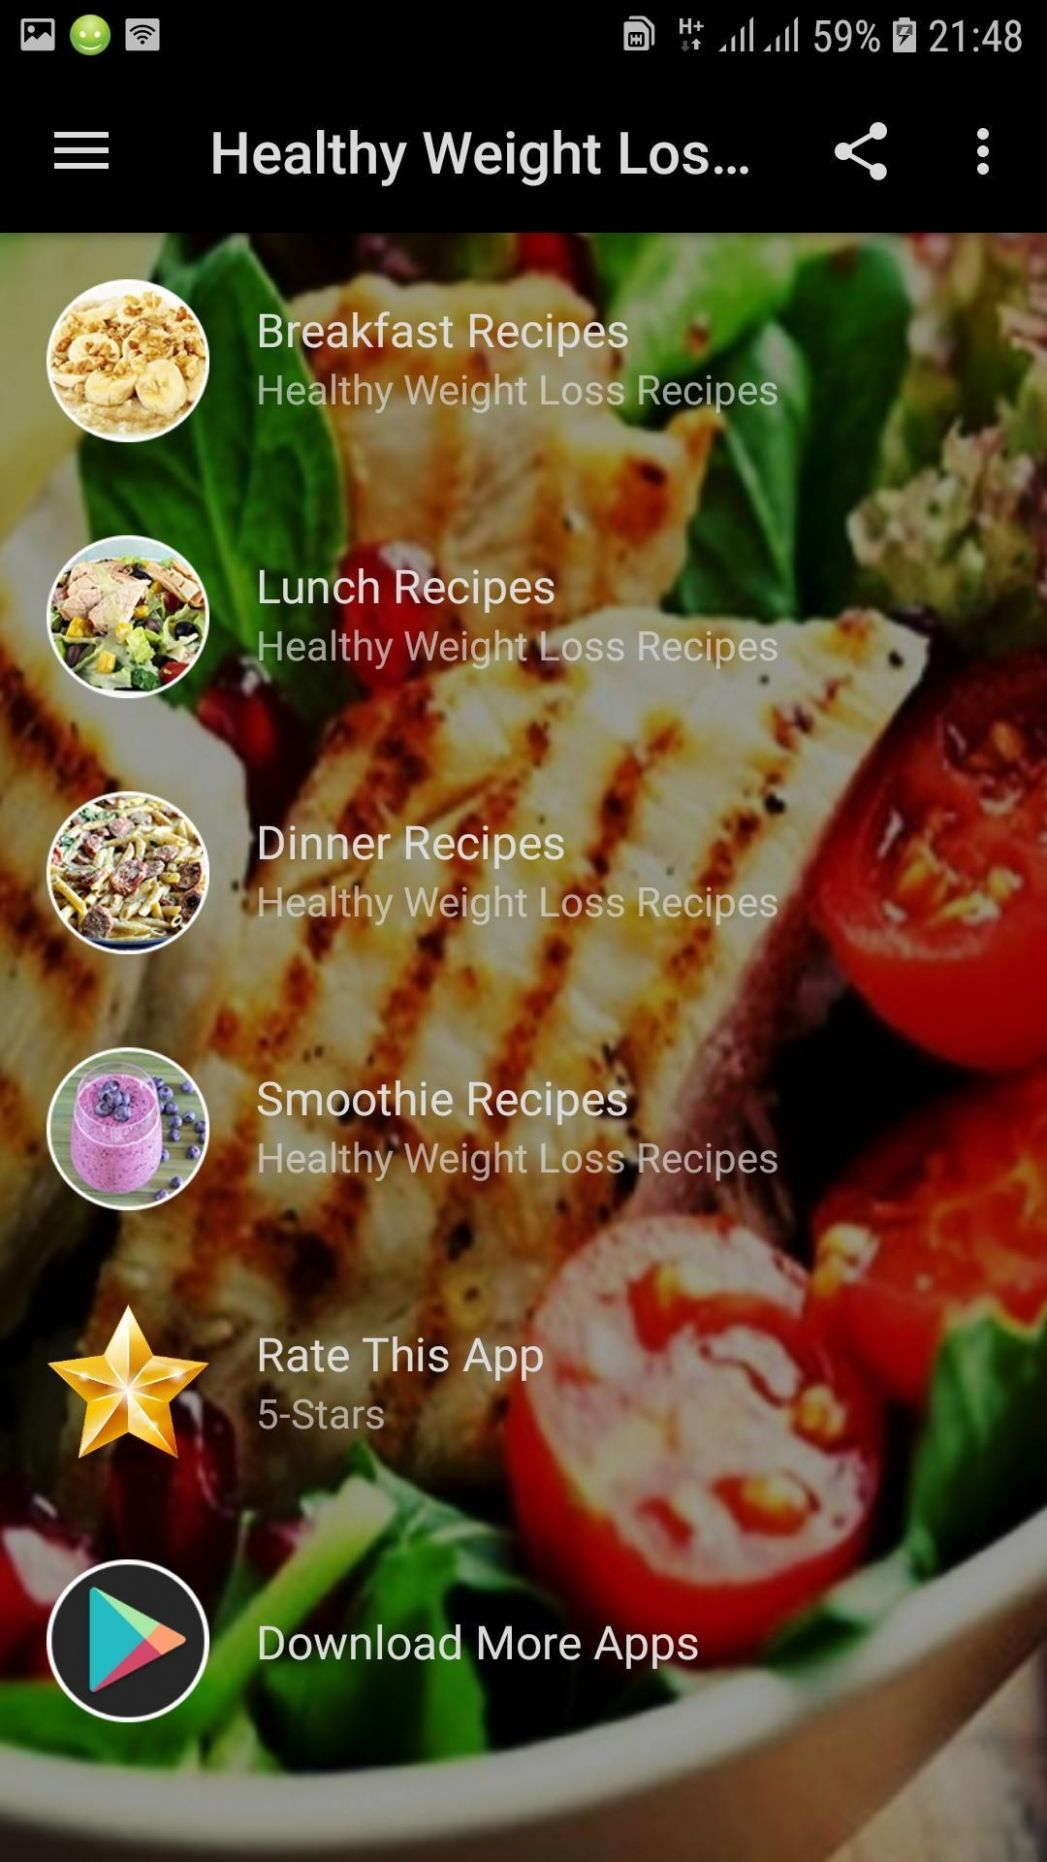 Healthy Weight Loss Food Recipes for Android - APK Download